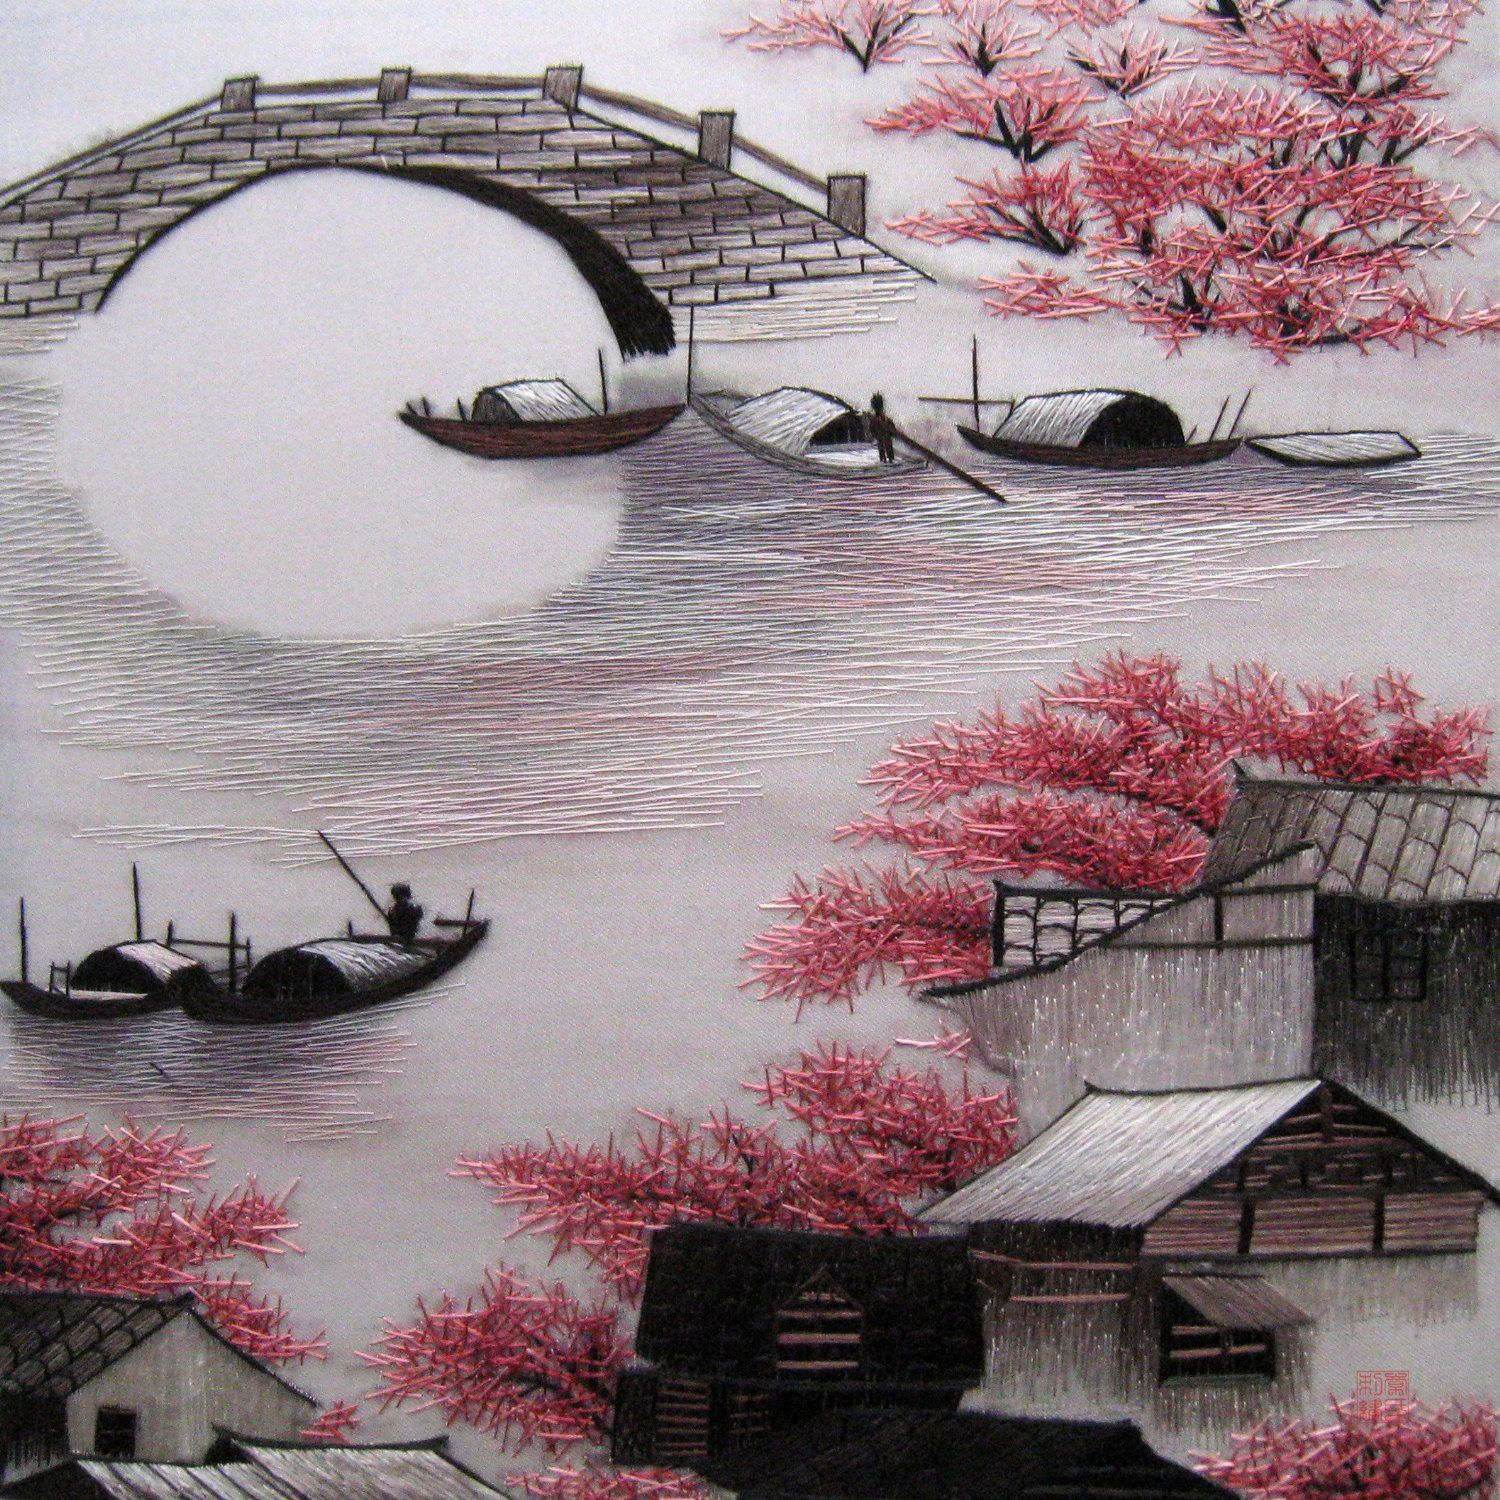 Amazon Com King Silk Art 100 Handmade Embroidery Mixed Group Large Framed Ancient Retro House Chinese Landscape Painting Japanese Painting Chinese Landscape